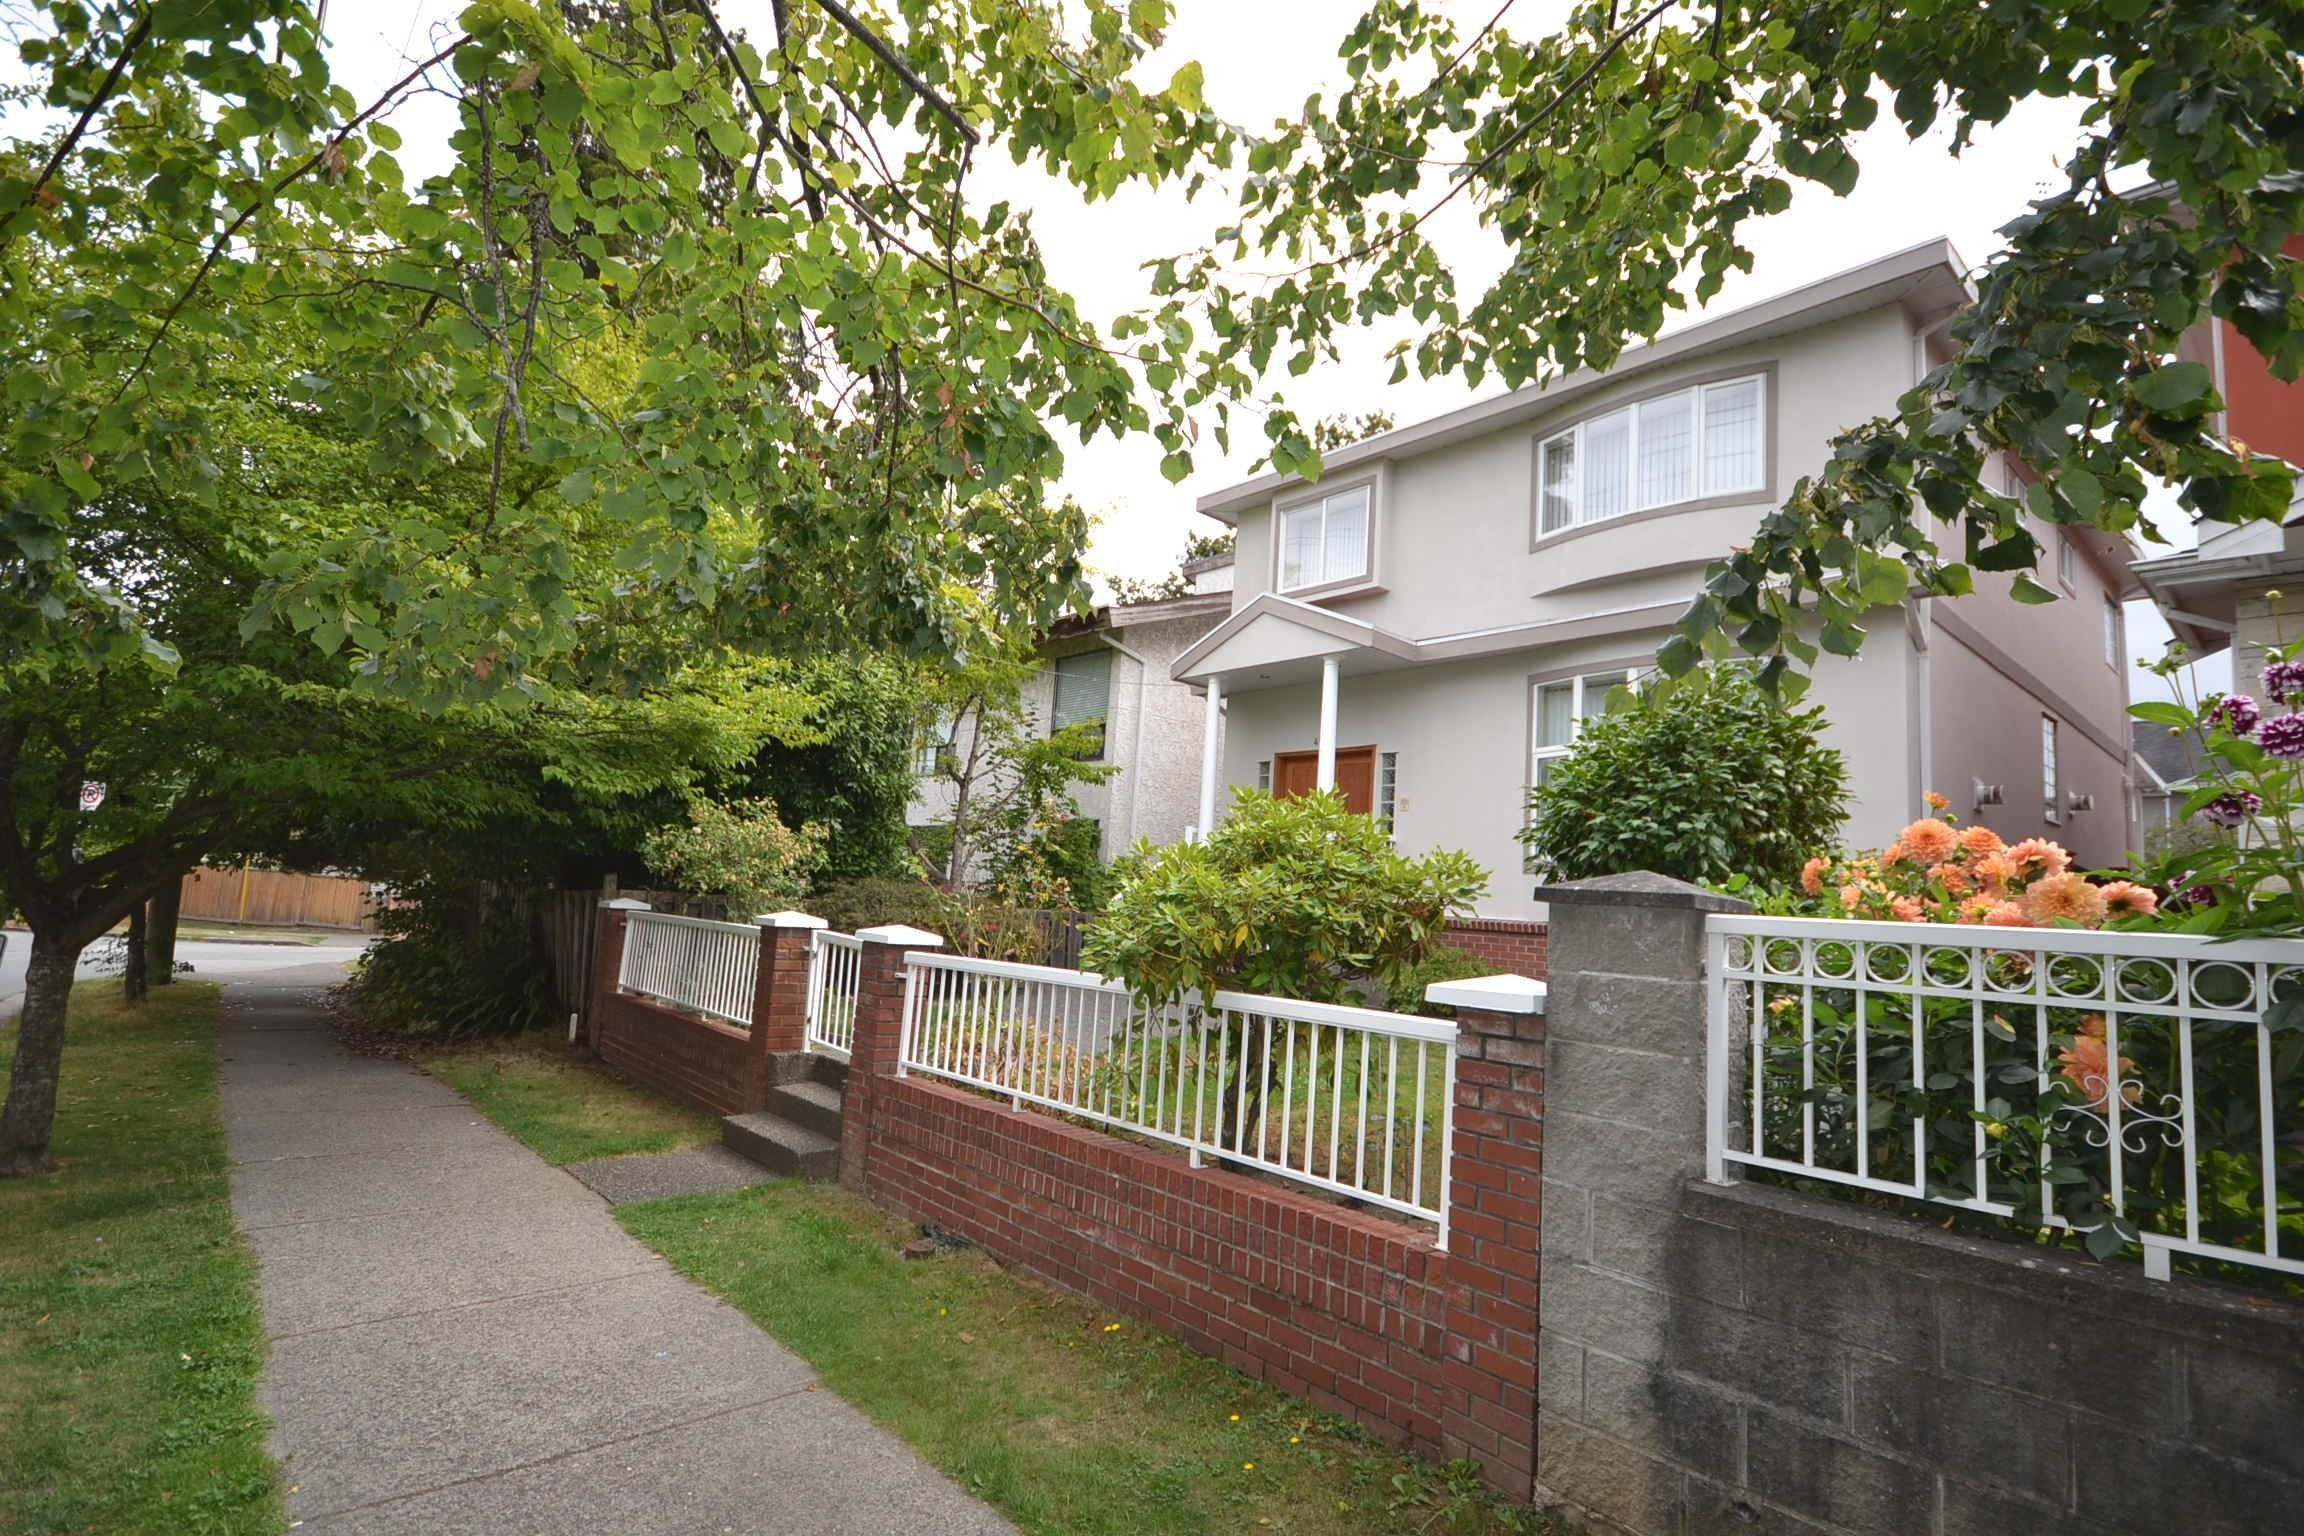 Main Photo: 4516 GLADSTONE Street in Vancouver: Victoria VE House for sale (Vancouver East)  : MLS®# R2615000